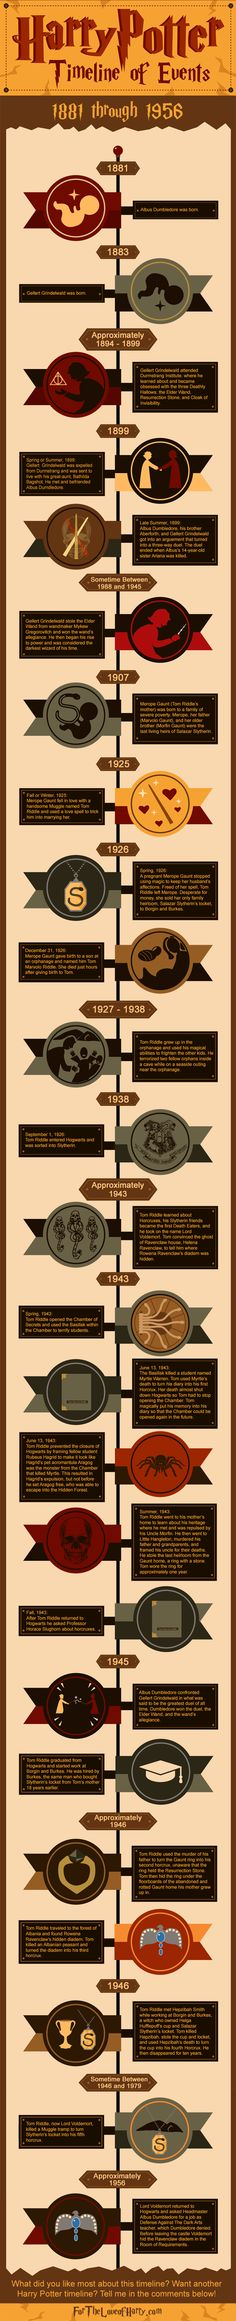 Harry Potter timeline infographic of important events that happened from 1881 to 1956.